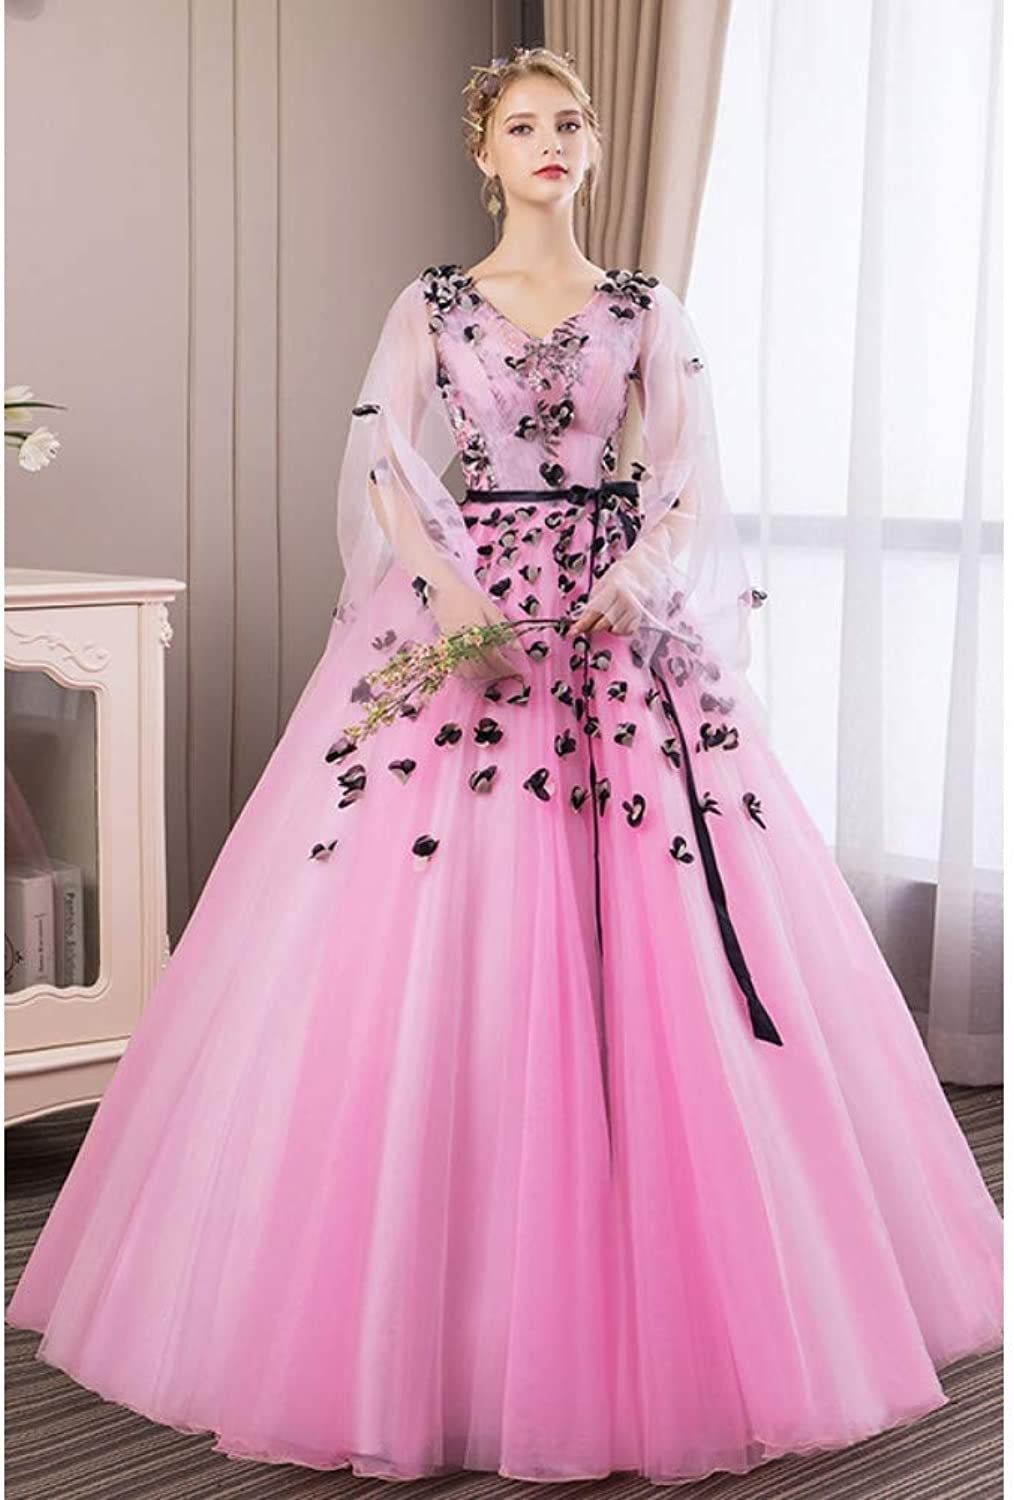 QAQBDBCKL Queen Cosplay Pink 3 Flowers Medieval Dress Renaissance Costume Victorian Marie Antoinette Belle Ball